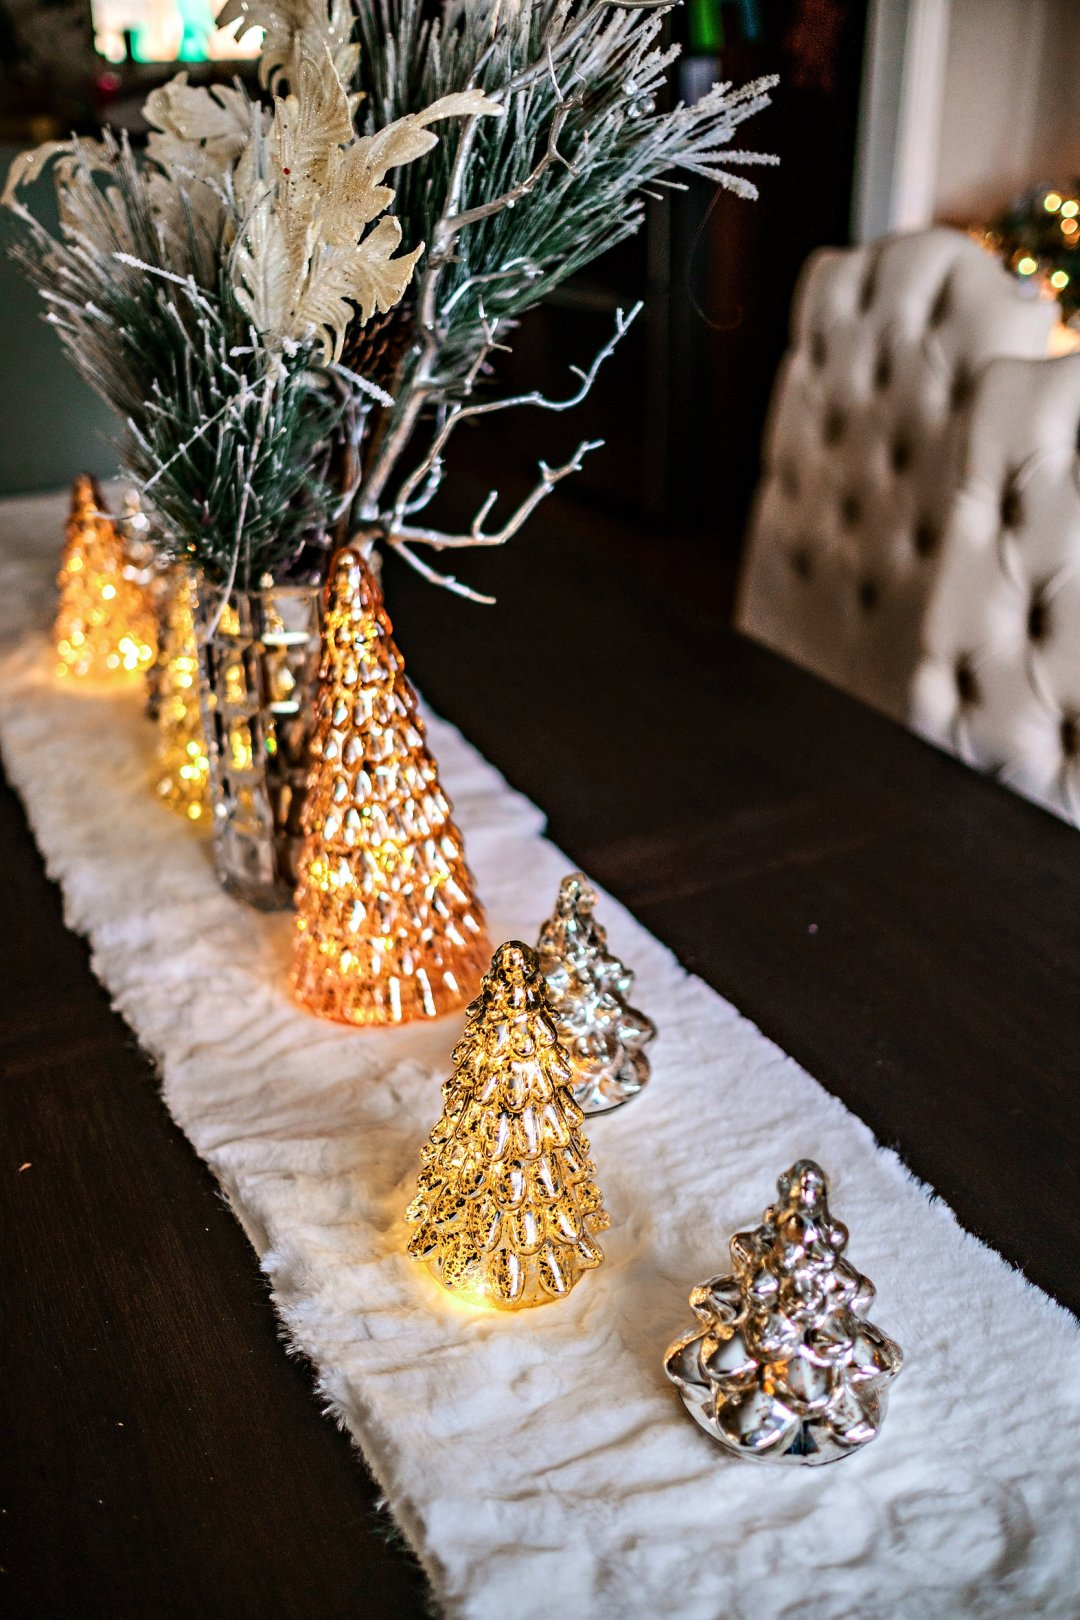 Looking for the best Christmas decor? Popular Atlanta Blogger Happily Hughes is sharing her favorite Christmas decor with Wayfair. Click to see it HERE!